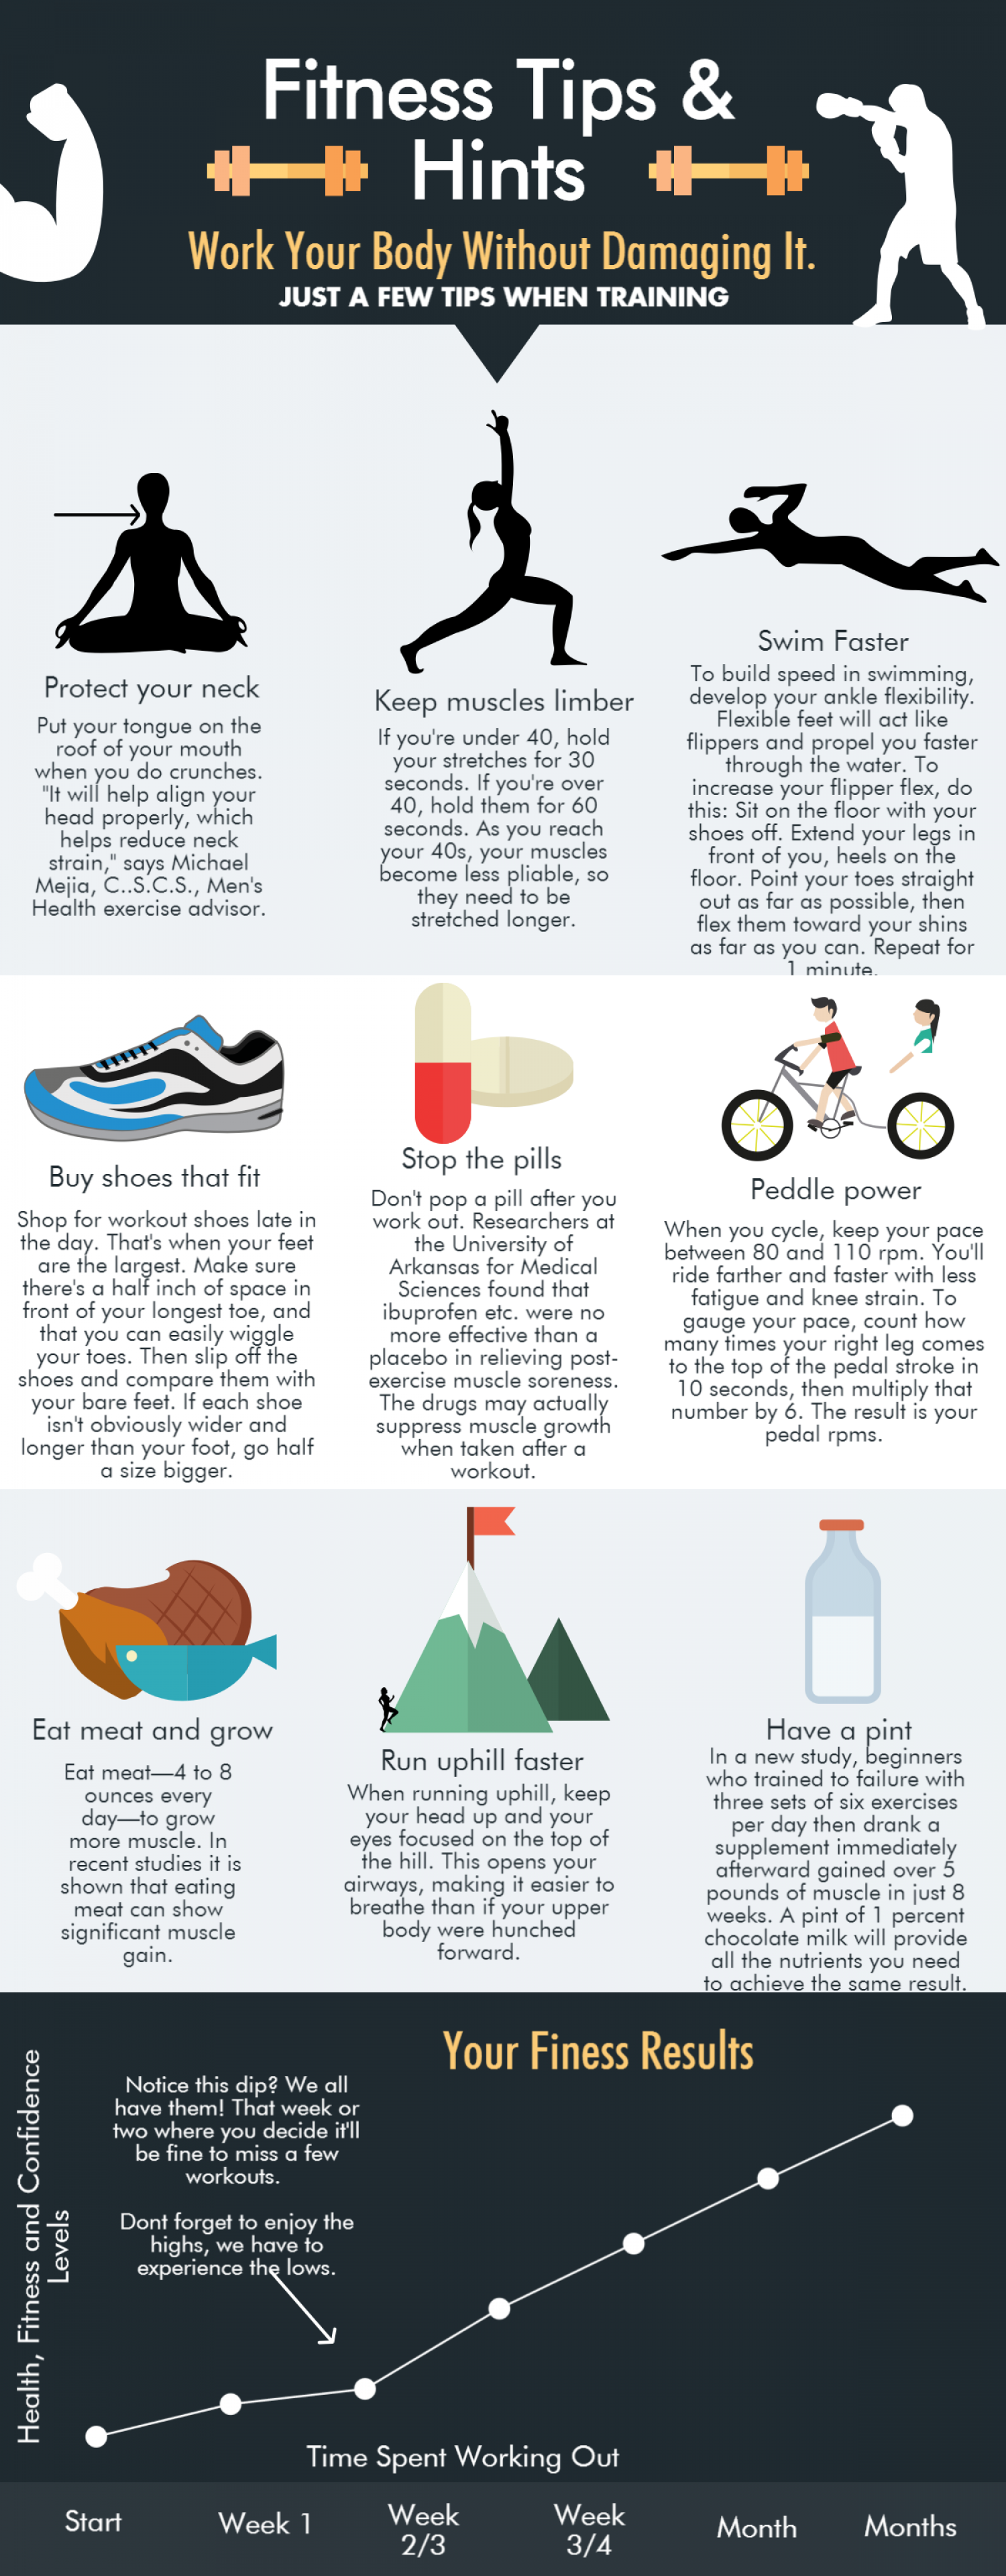 Fitness Tips Infographic